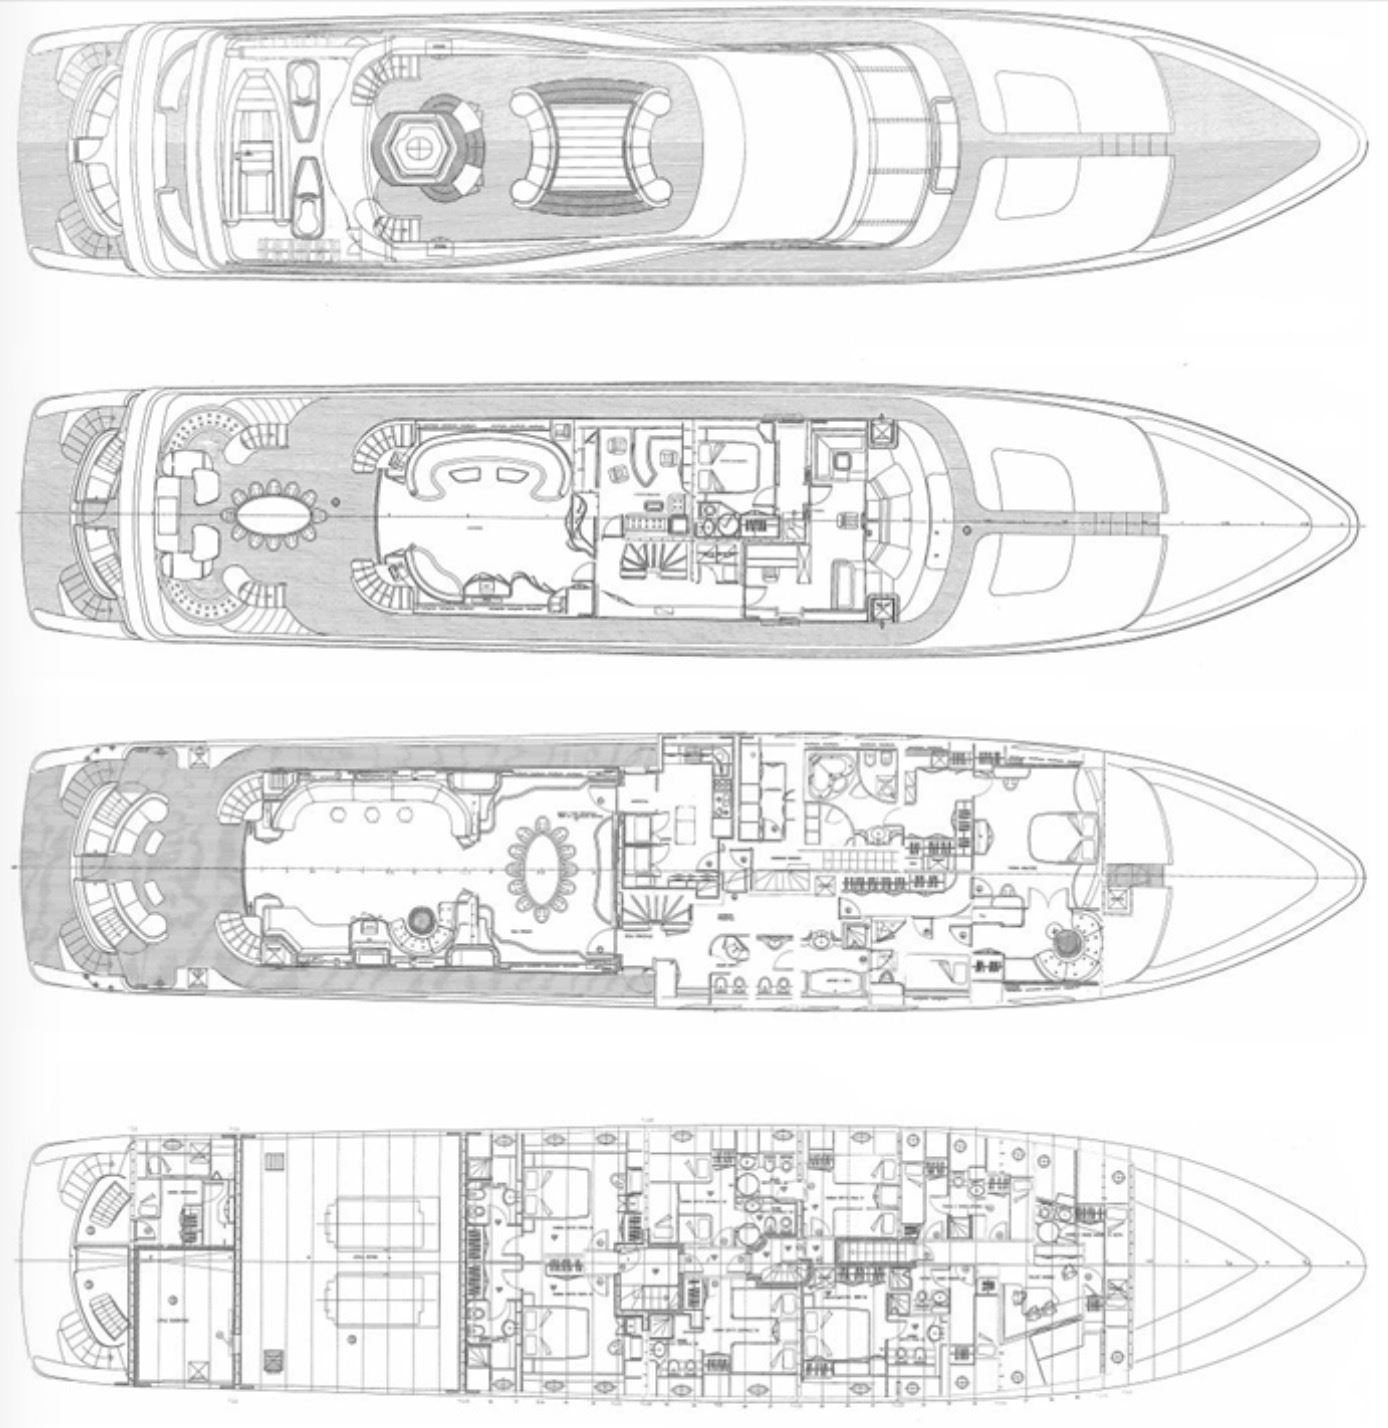 140ft Tri-Deck Long Range Motoryacht with 8 Guest Cabins